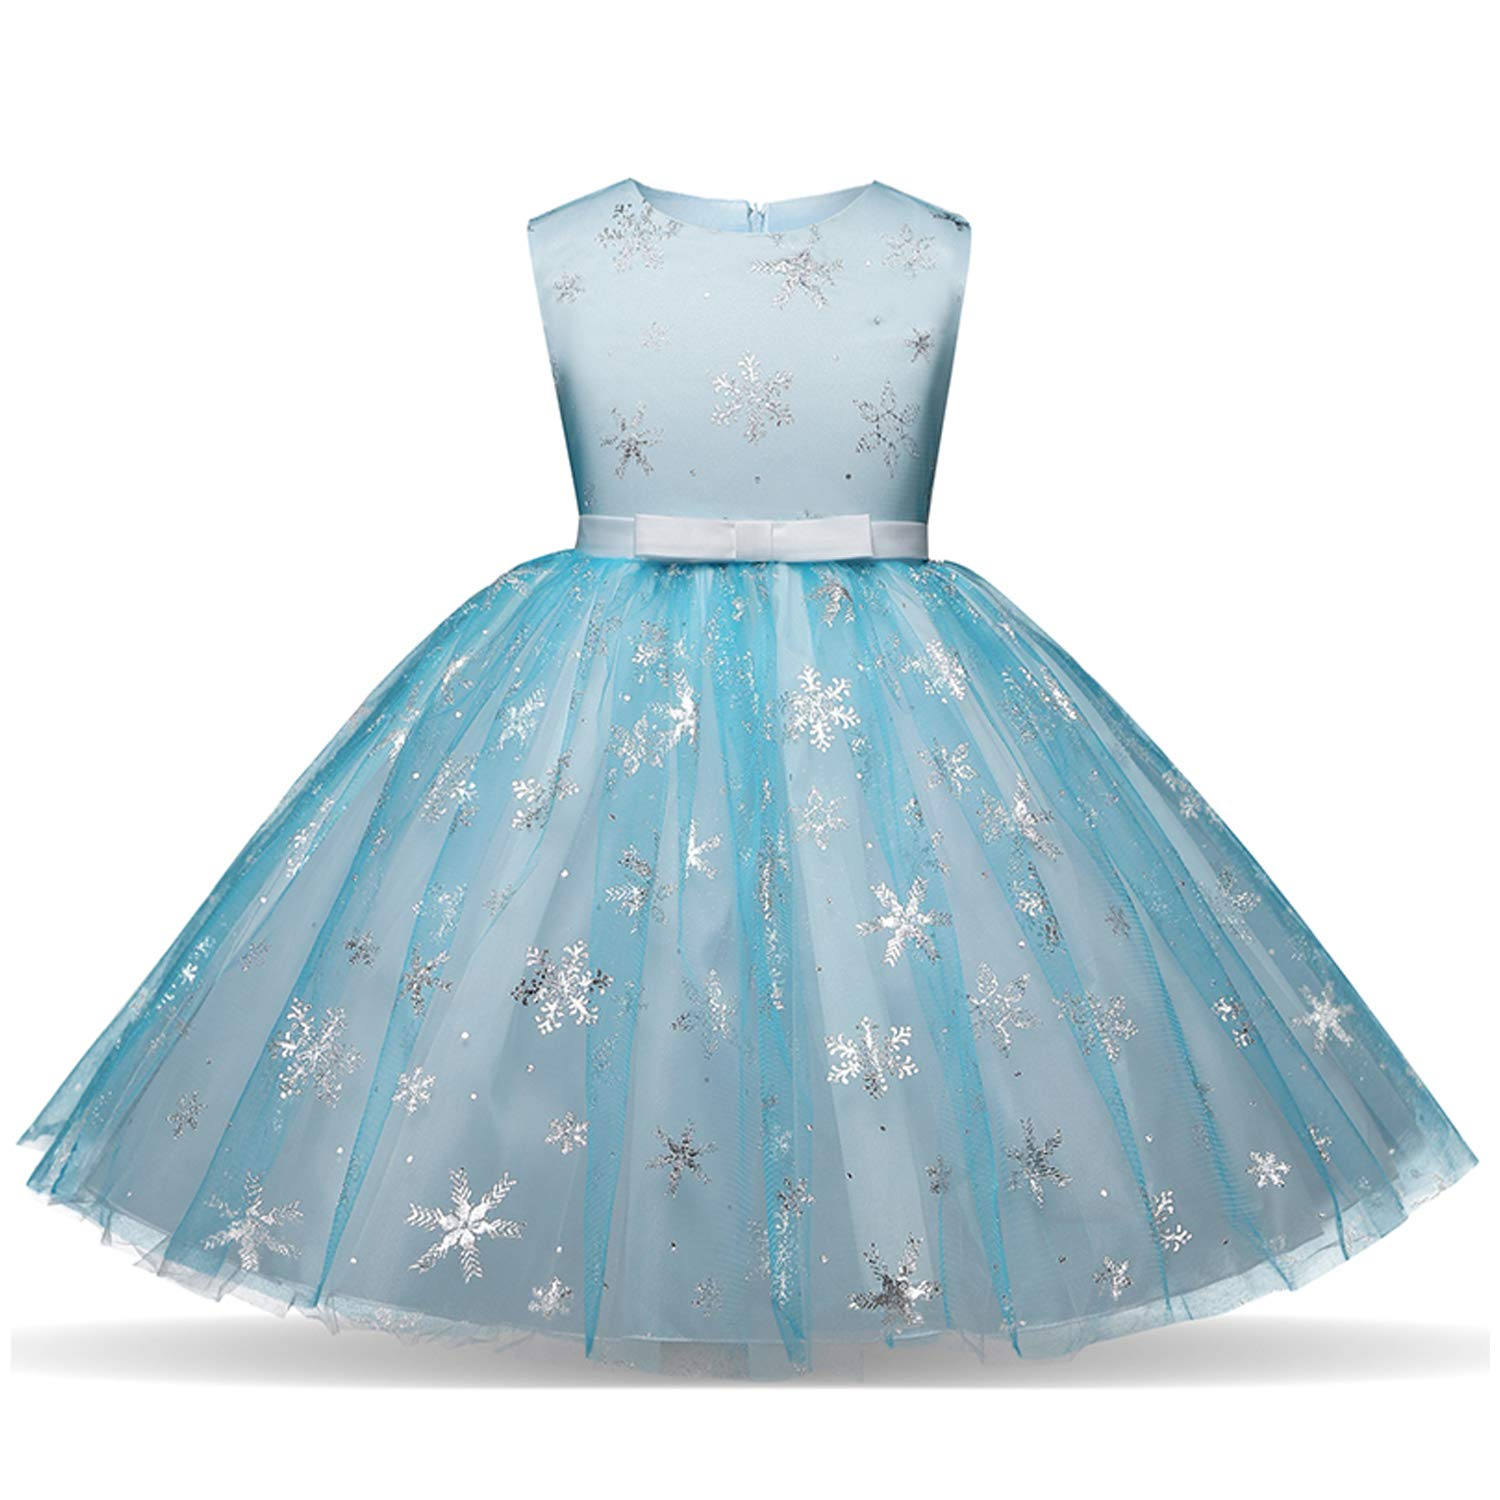 NNJXD Girl Sequin Princess Dress Tutu Tulle Birthday Wedding Formal Party Dresses Size (150) 7-8 Years Blue